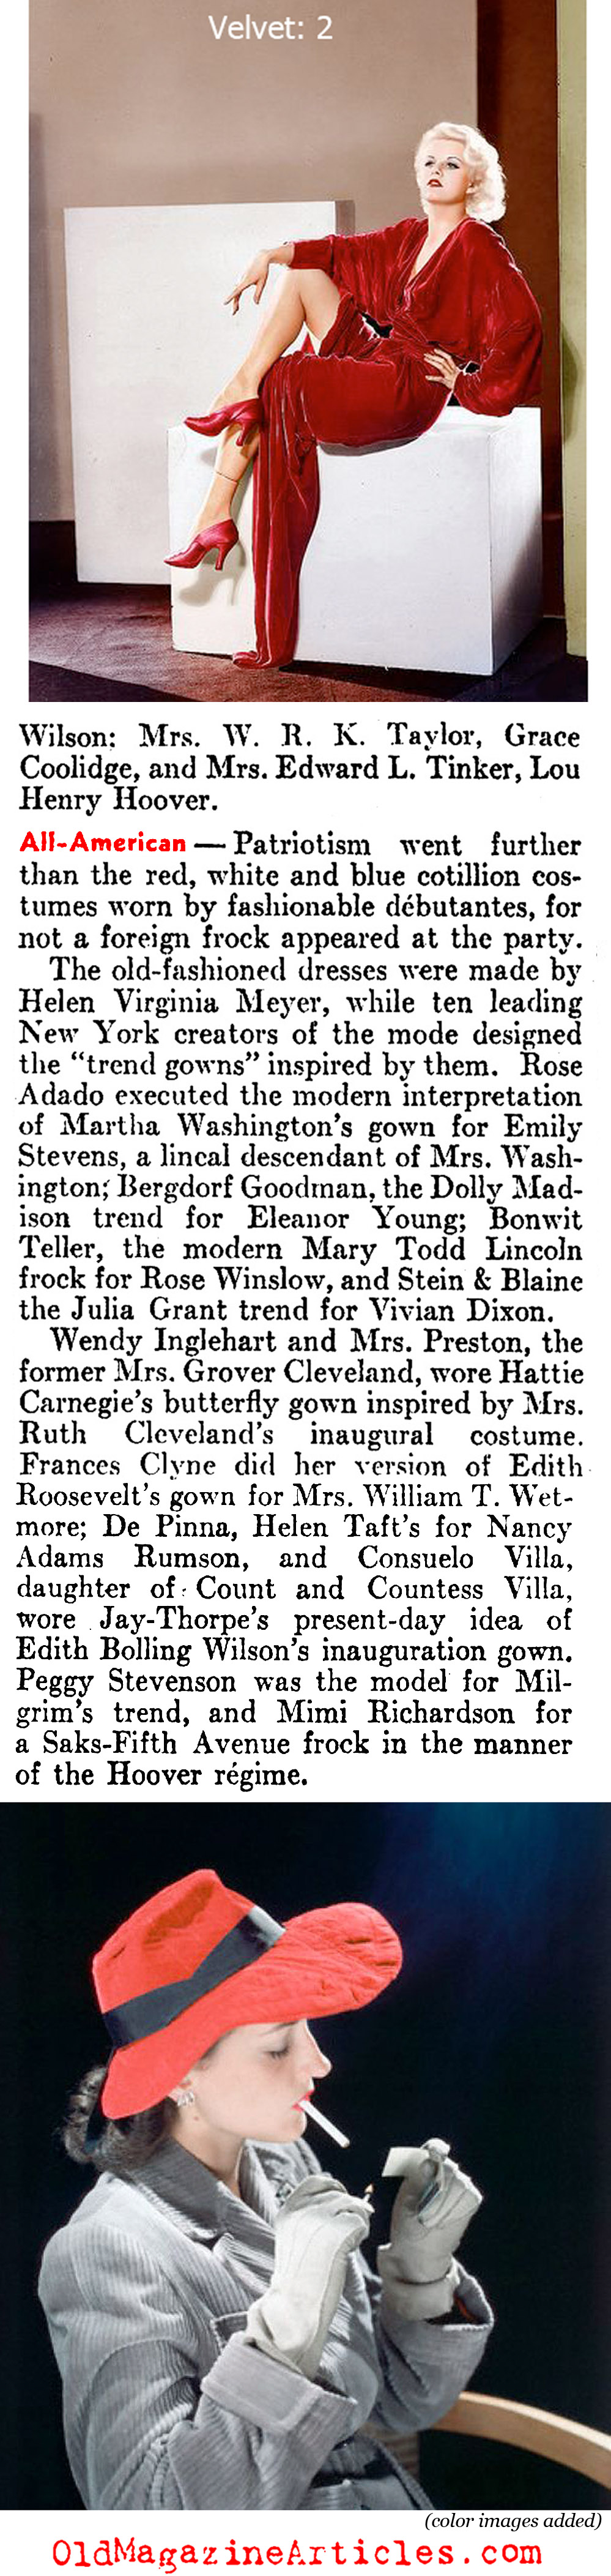 The New Glamour of Velvet (Literary Digest, 1936)